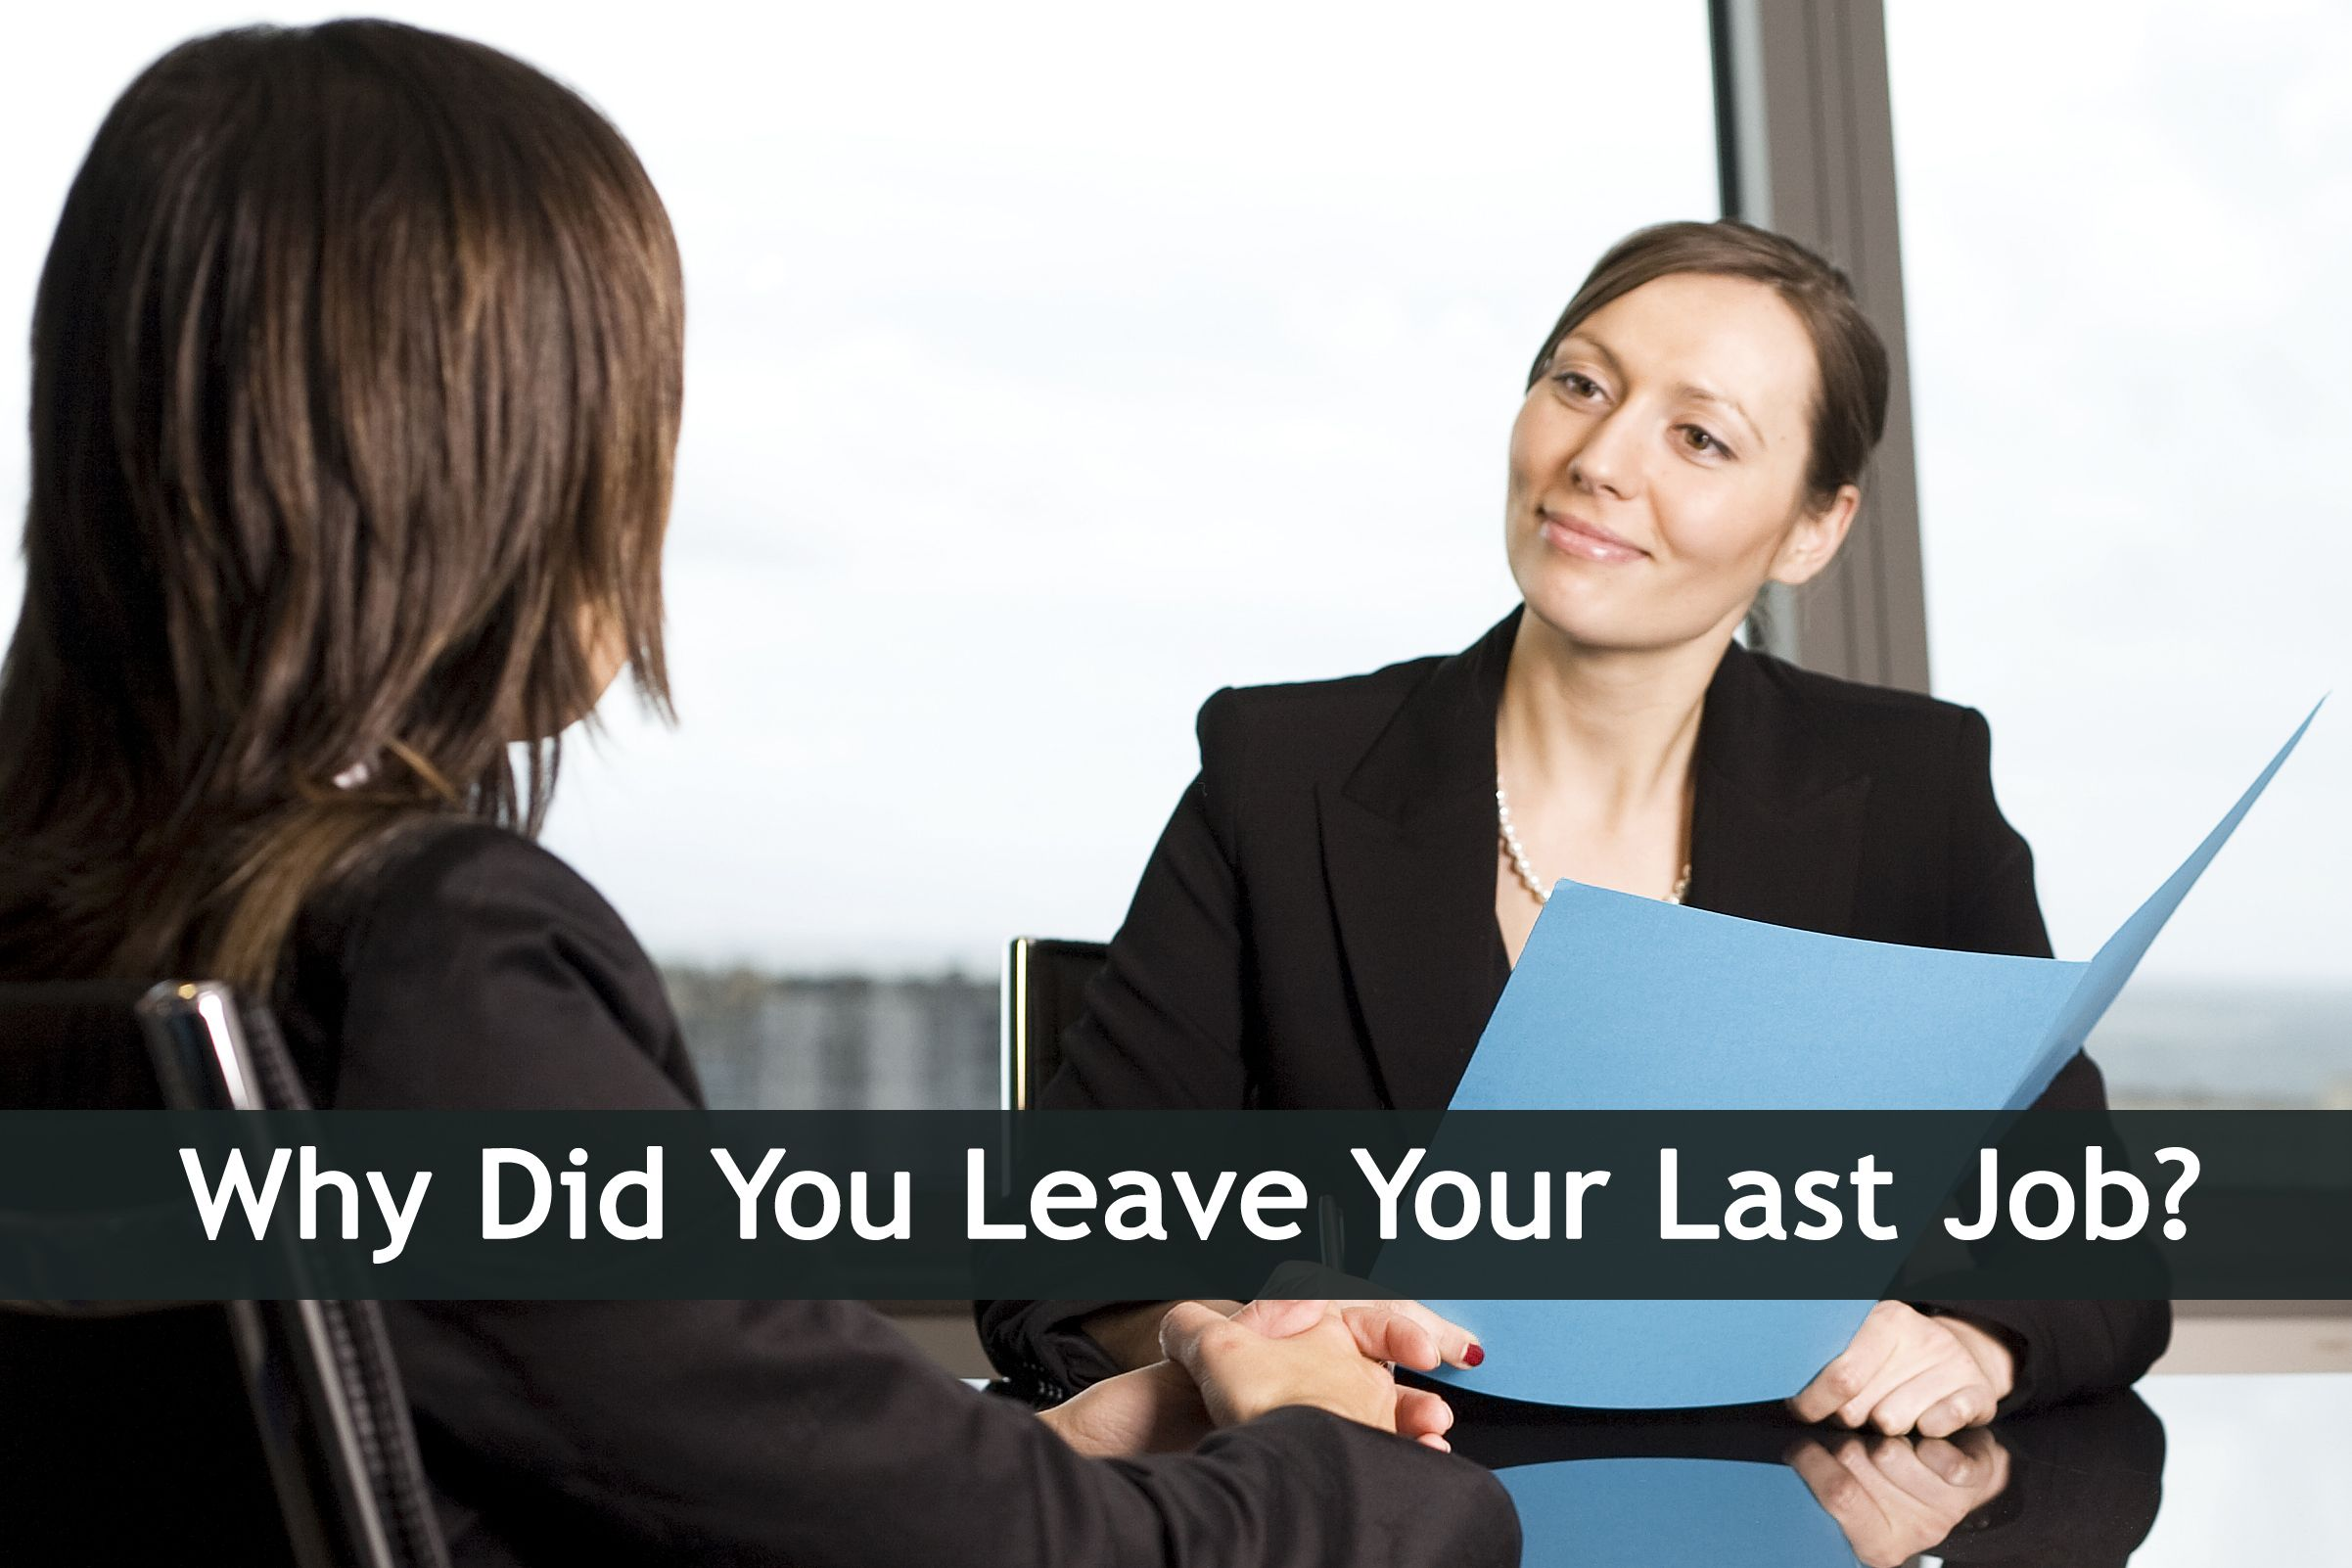 U0027Why Did You Leave Your Last Job?u0027   How To Answer This Popular Interview  Question   Matrix Recruitment Group. U0027